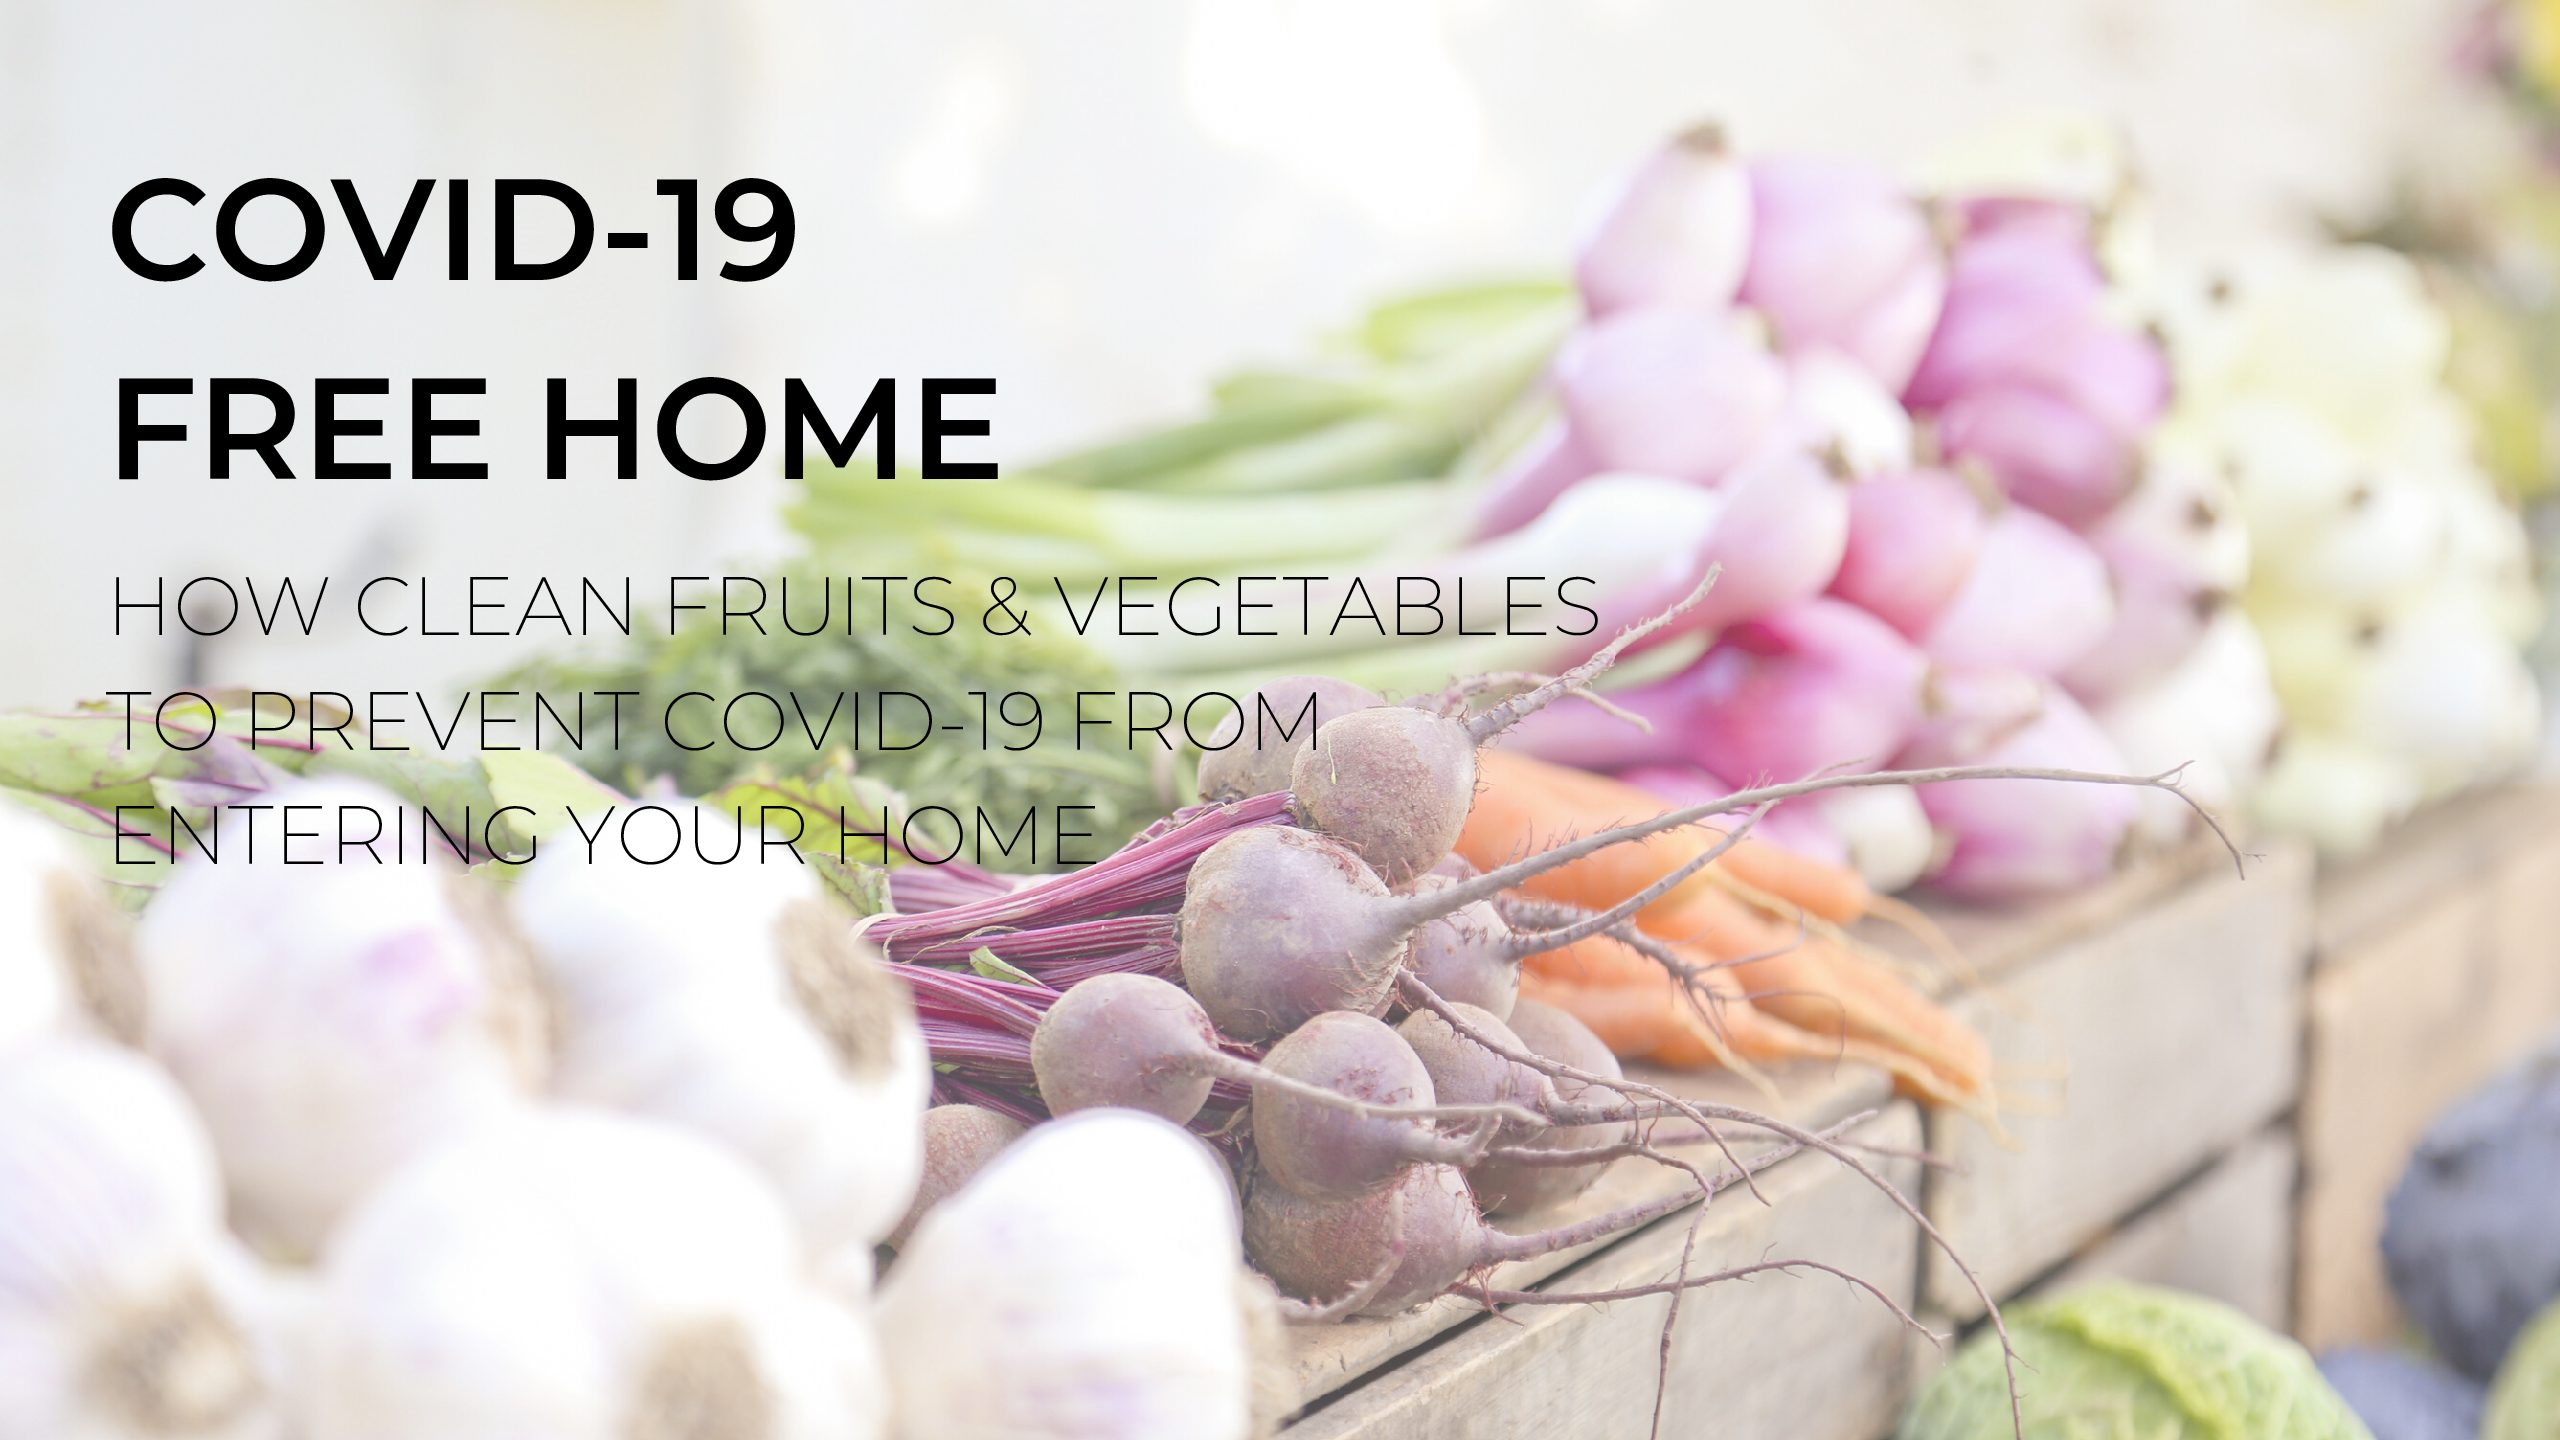 How Clean Produce & Grocery Items to Prevent Covid-19 from Entering Your Home